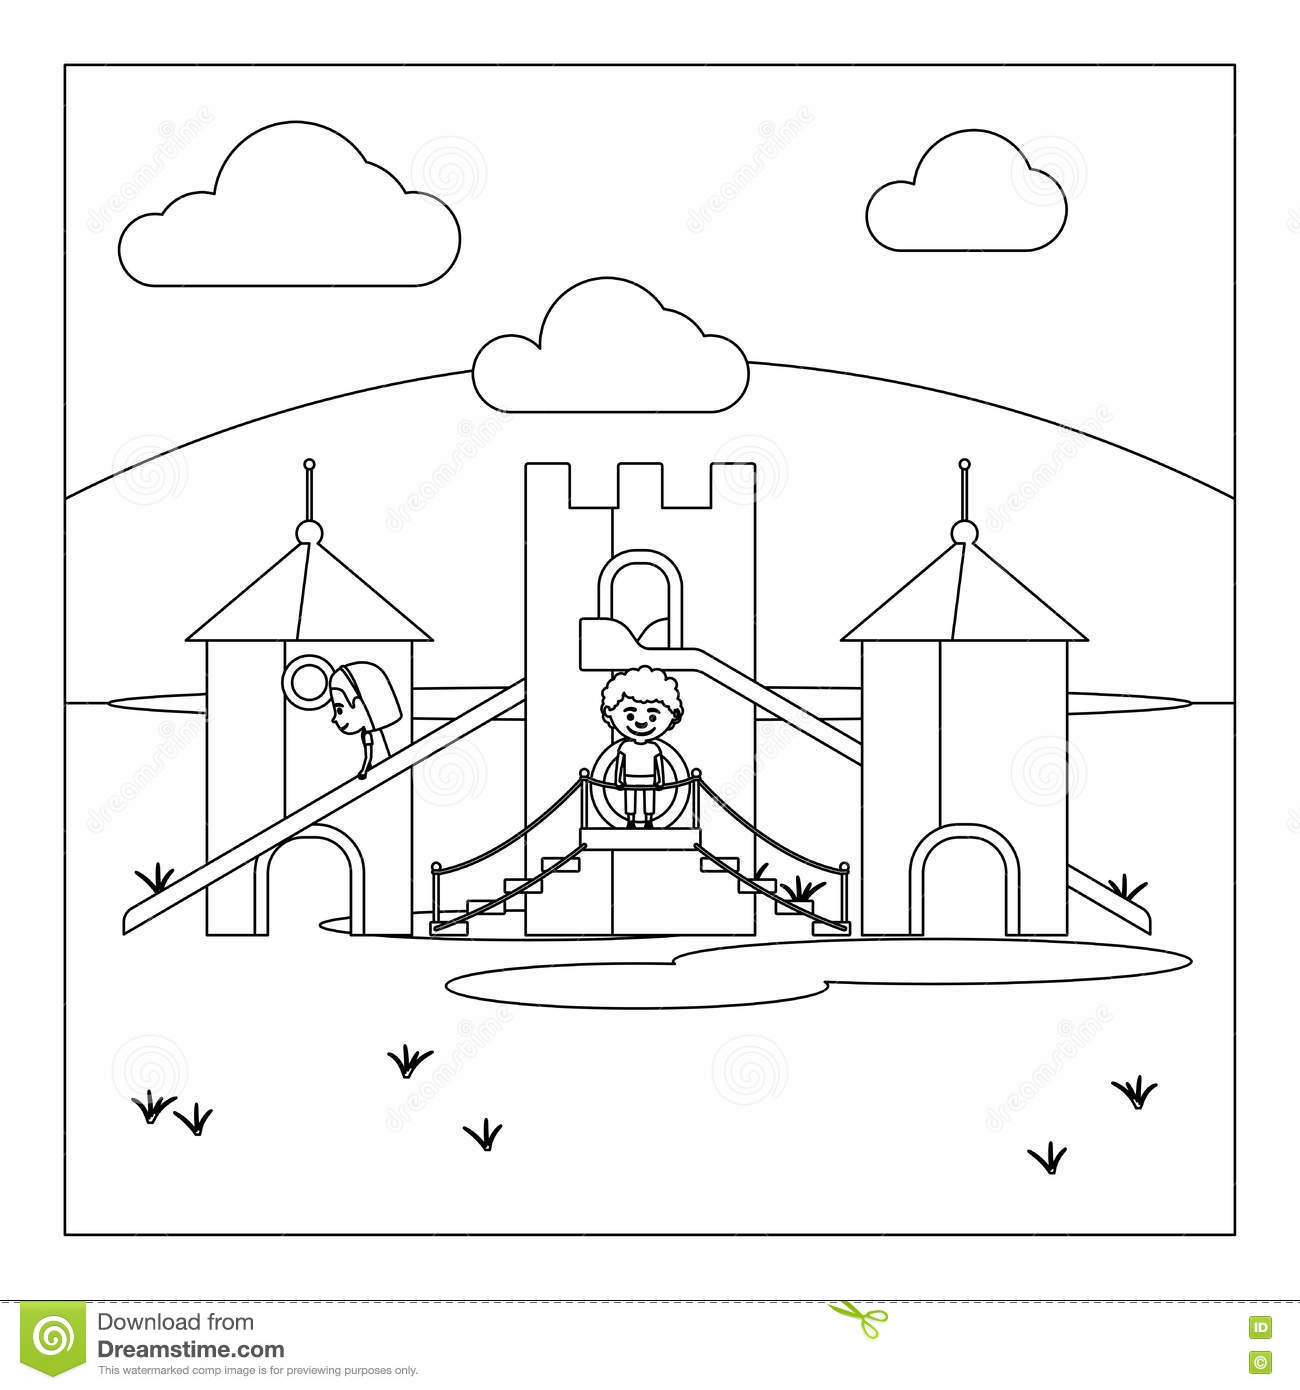 Coloring book page of a playground - Kids On Playground Coloring Book Page